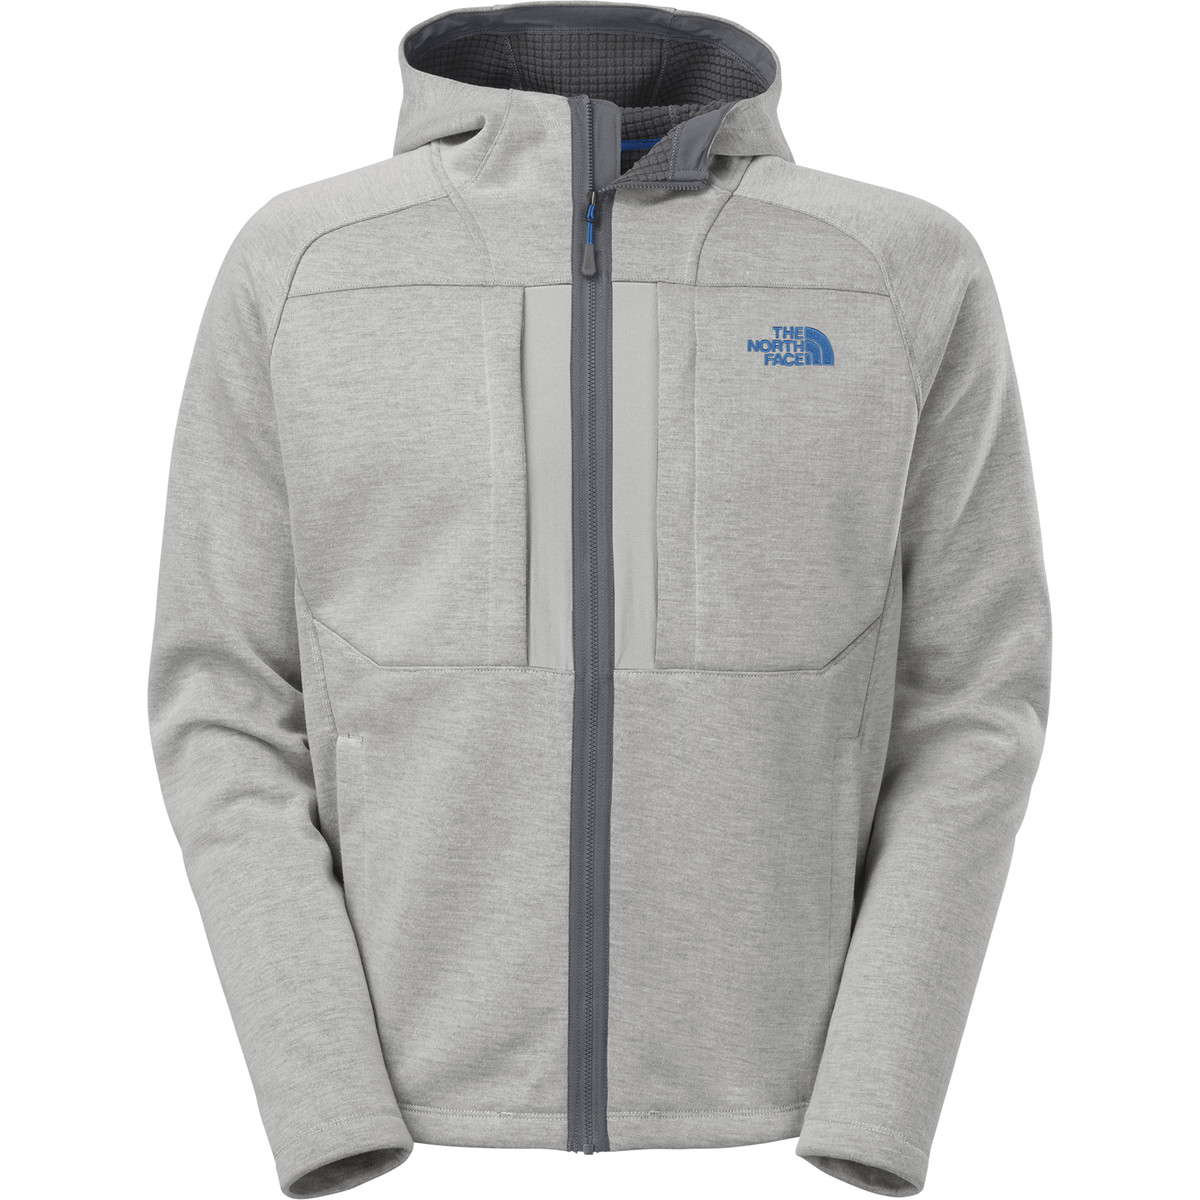 The North Face Arroyo Full Zip Hoodie